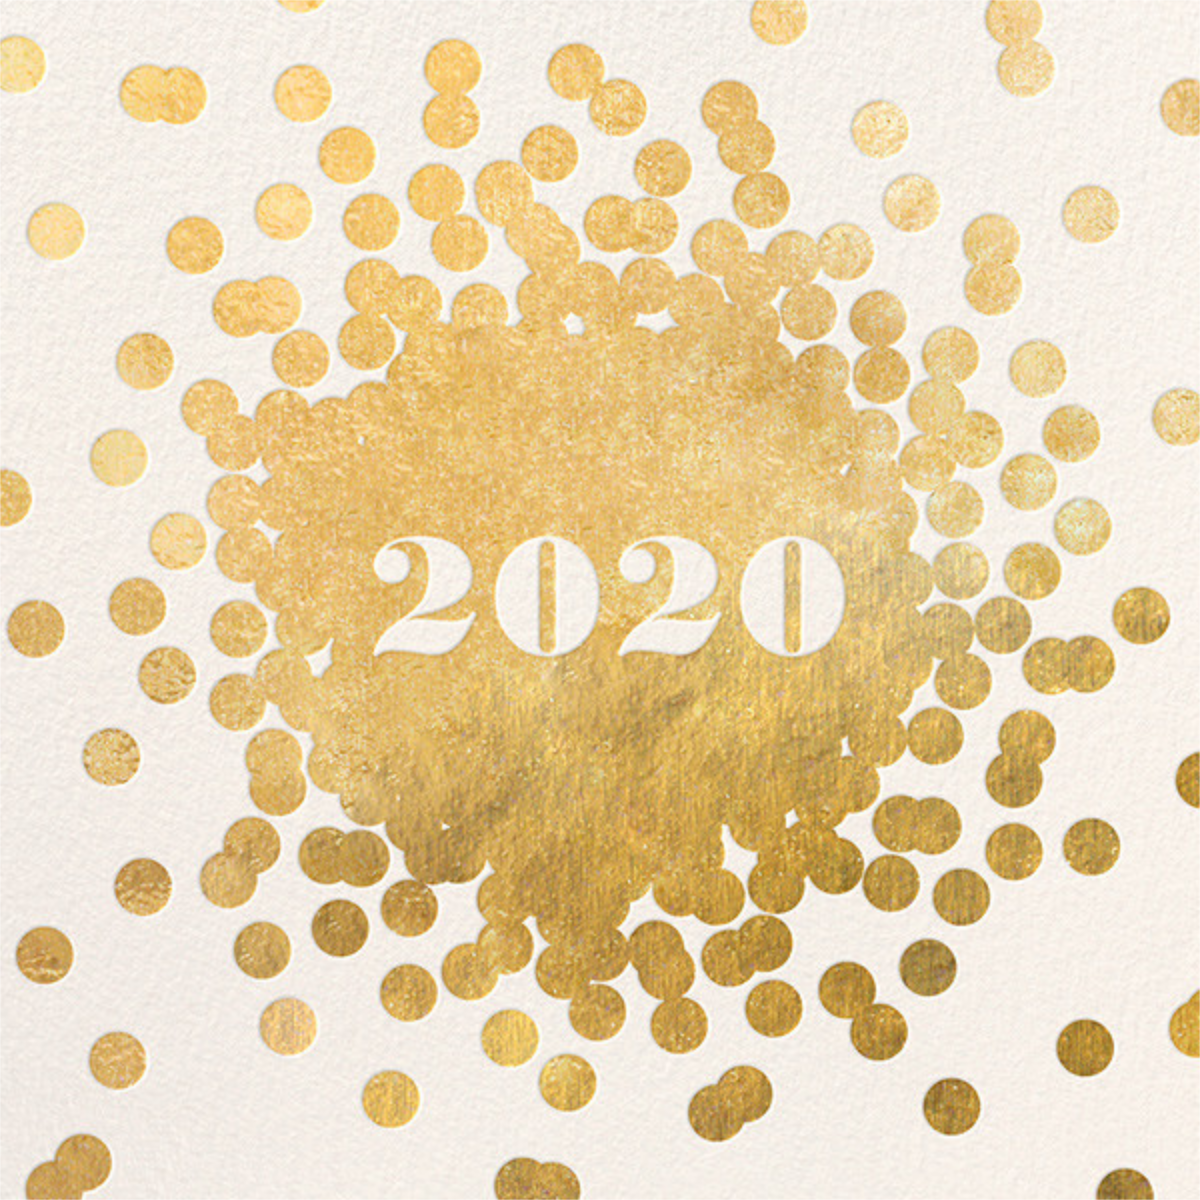 Confetti New Year (Invitation) - Gold/Cream - kate spade new york - Kate Spade invitations, save the dates, and cards